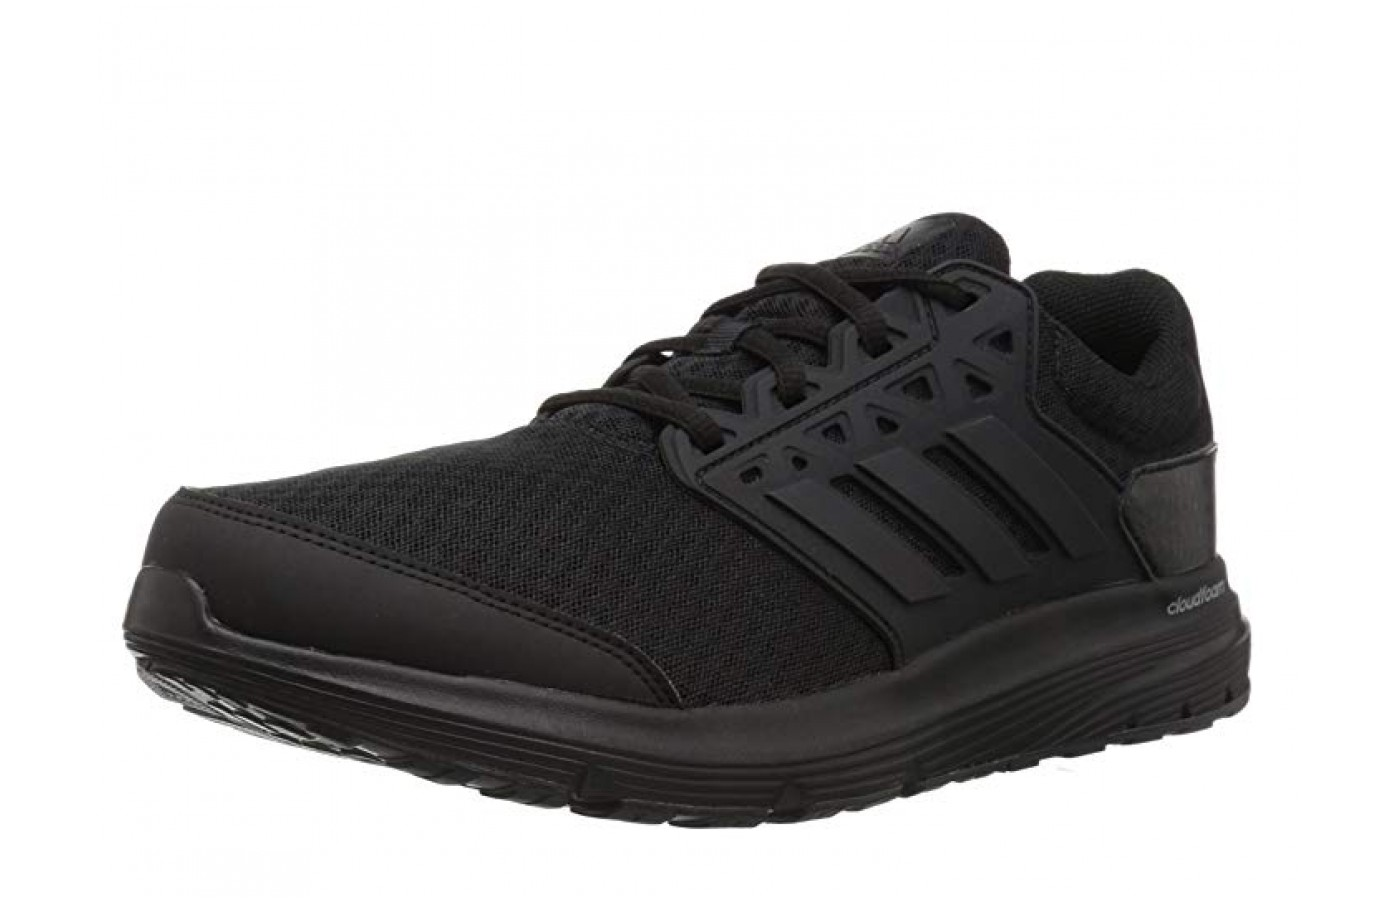 Midsole foam support and locking system of the Upper shoe promotes stability andcomfort.